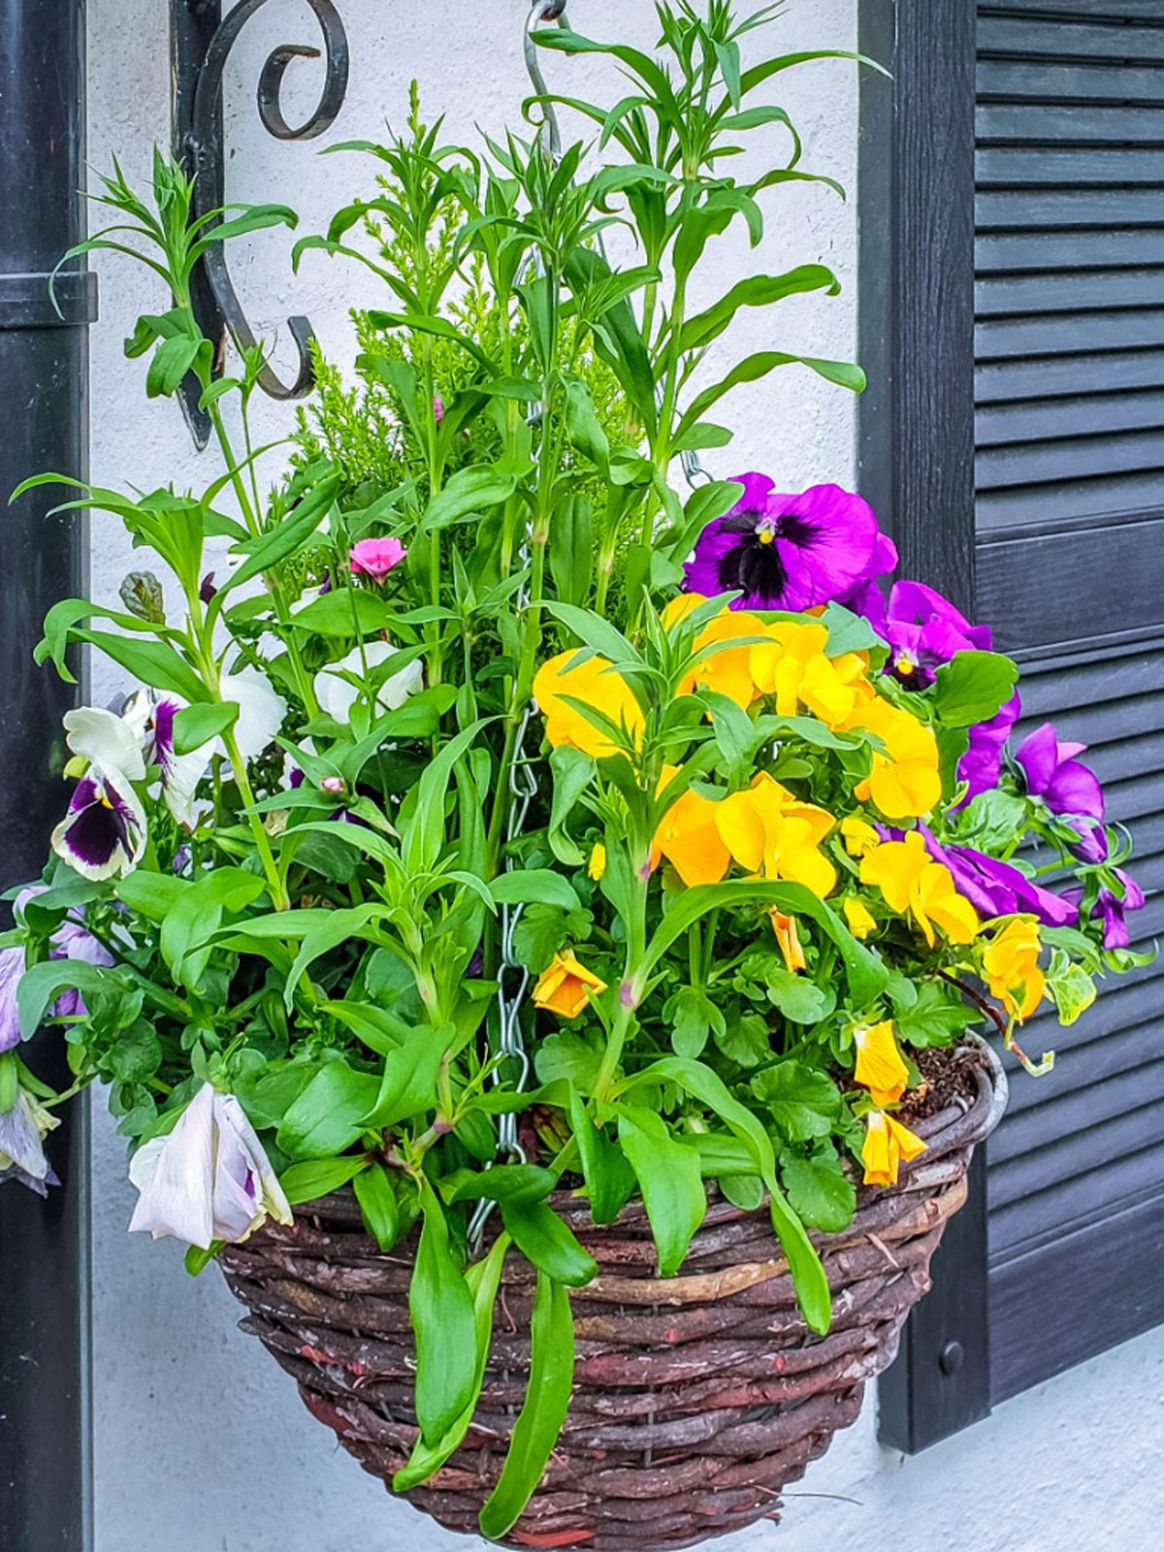 Hanging Basket Plants: Best Flowers For Hanging Baskets - garden ideas hanging baskets